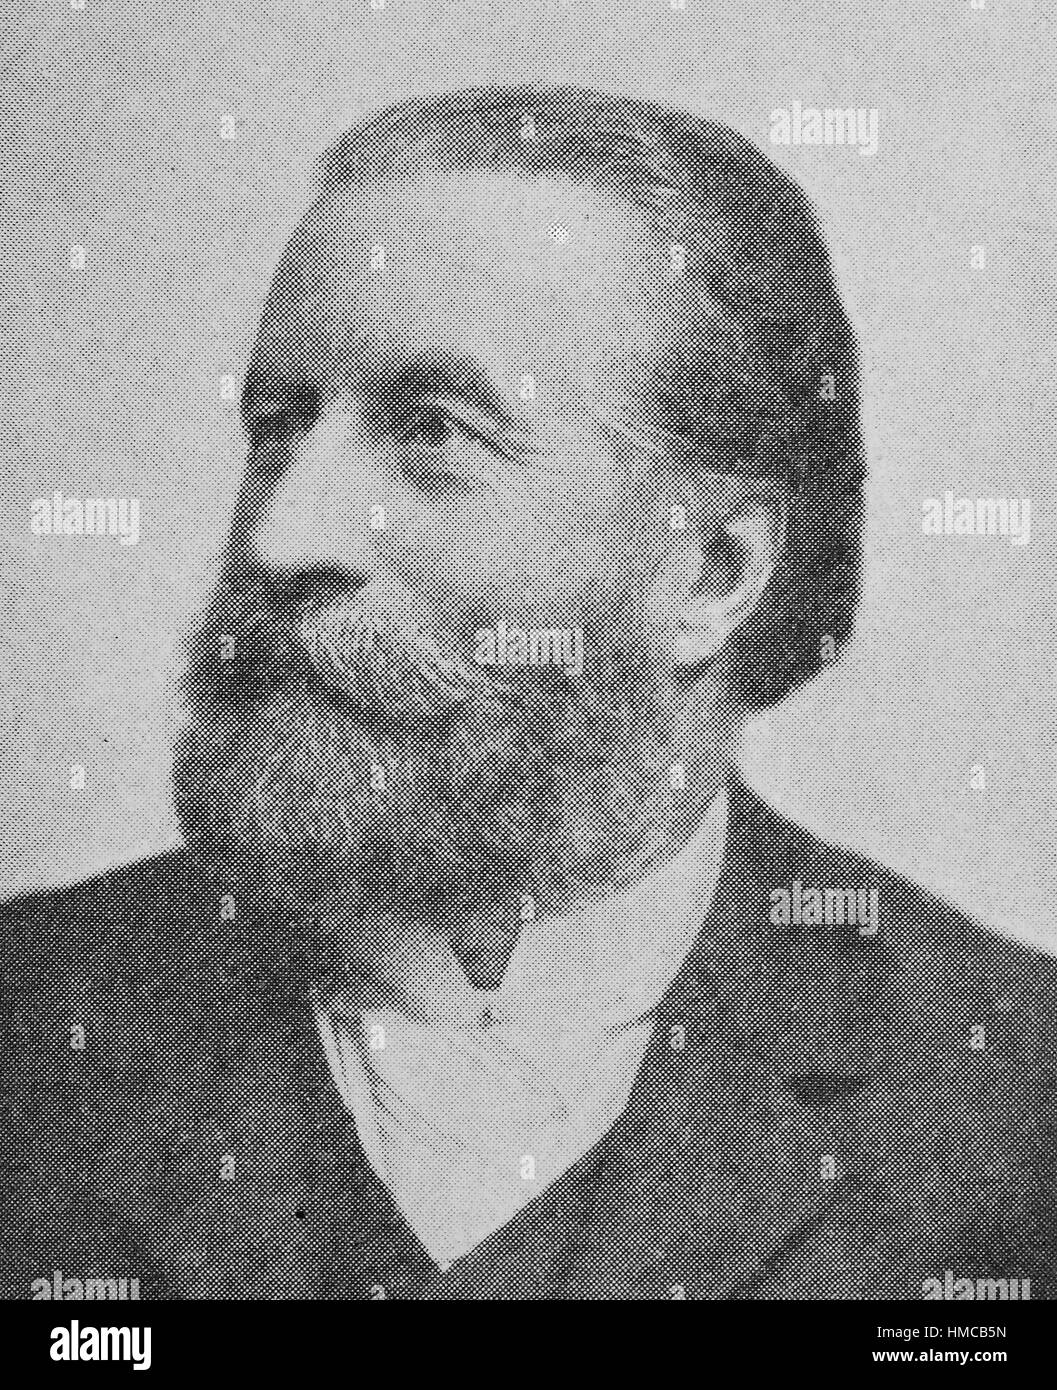 Ernst von Bergmann, 16 December 1836 - 25 March 1907, was a Baltic German surgeon. He is a pioneer of aseptic surgery., - Stock Image